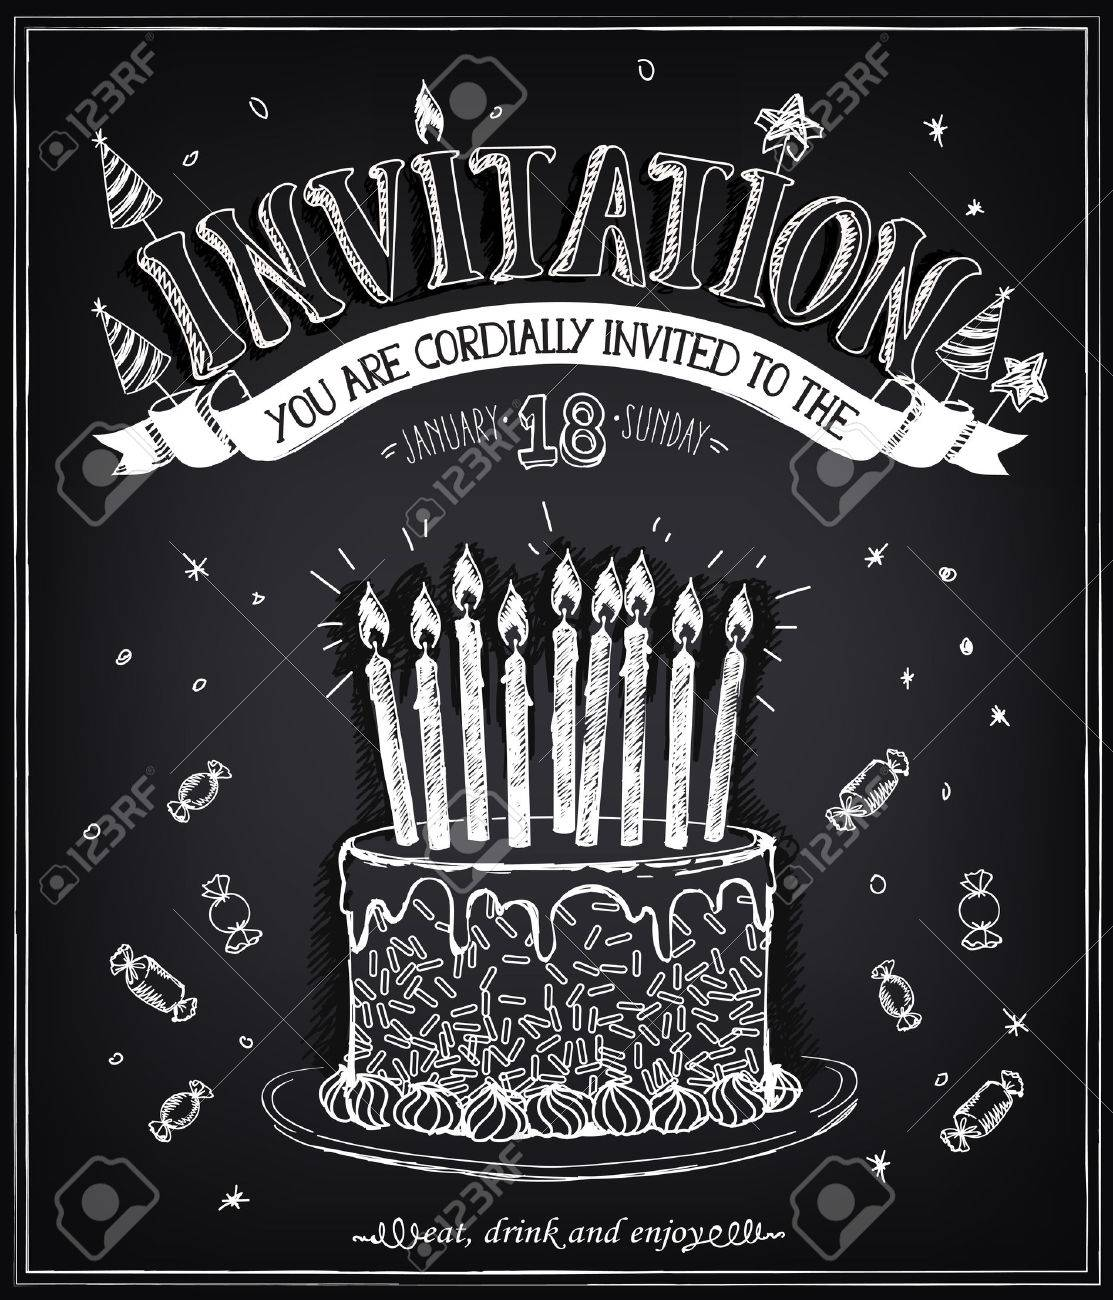 Invitation to the birthday party with a cake, candies and confetti. Freehand drawing with imitation of chalk sketch - 51483391